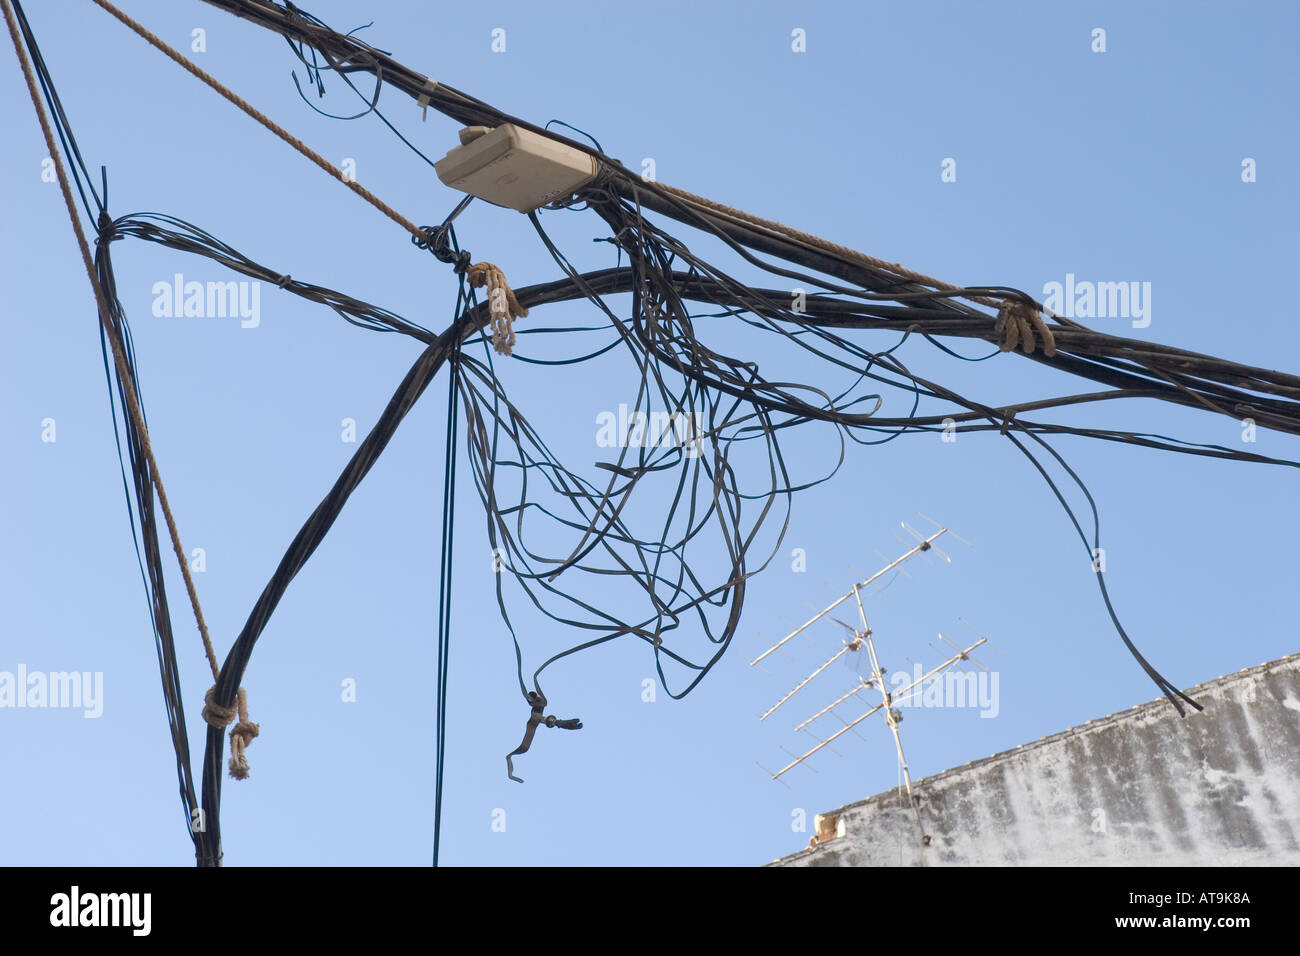 hight resolution of mess of electrical cables and telephone wires